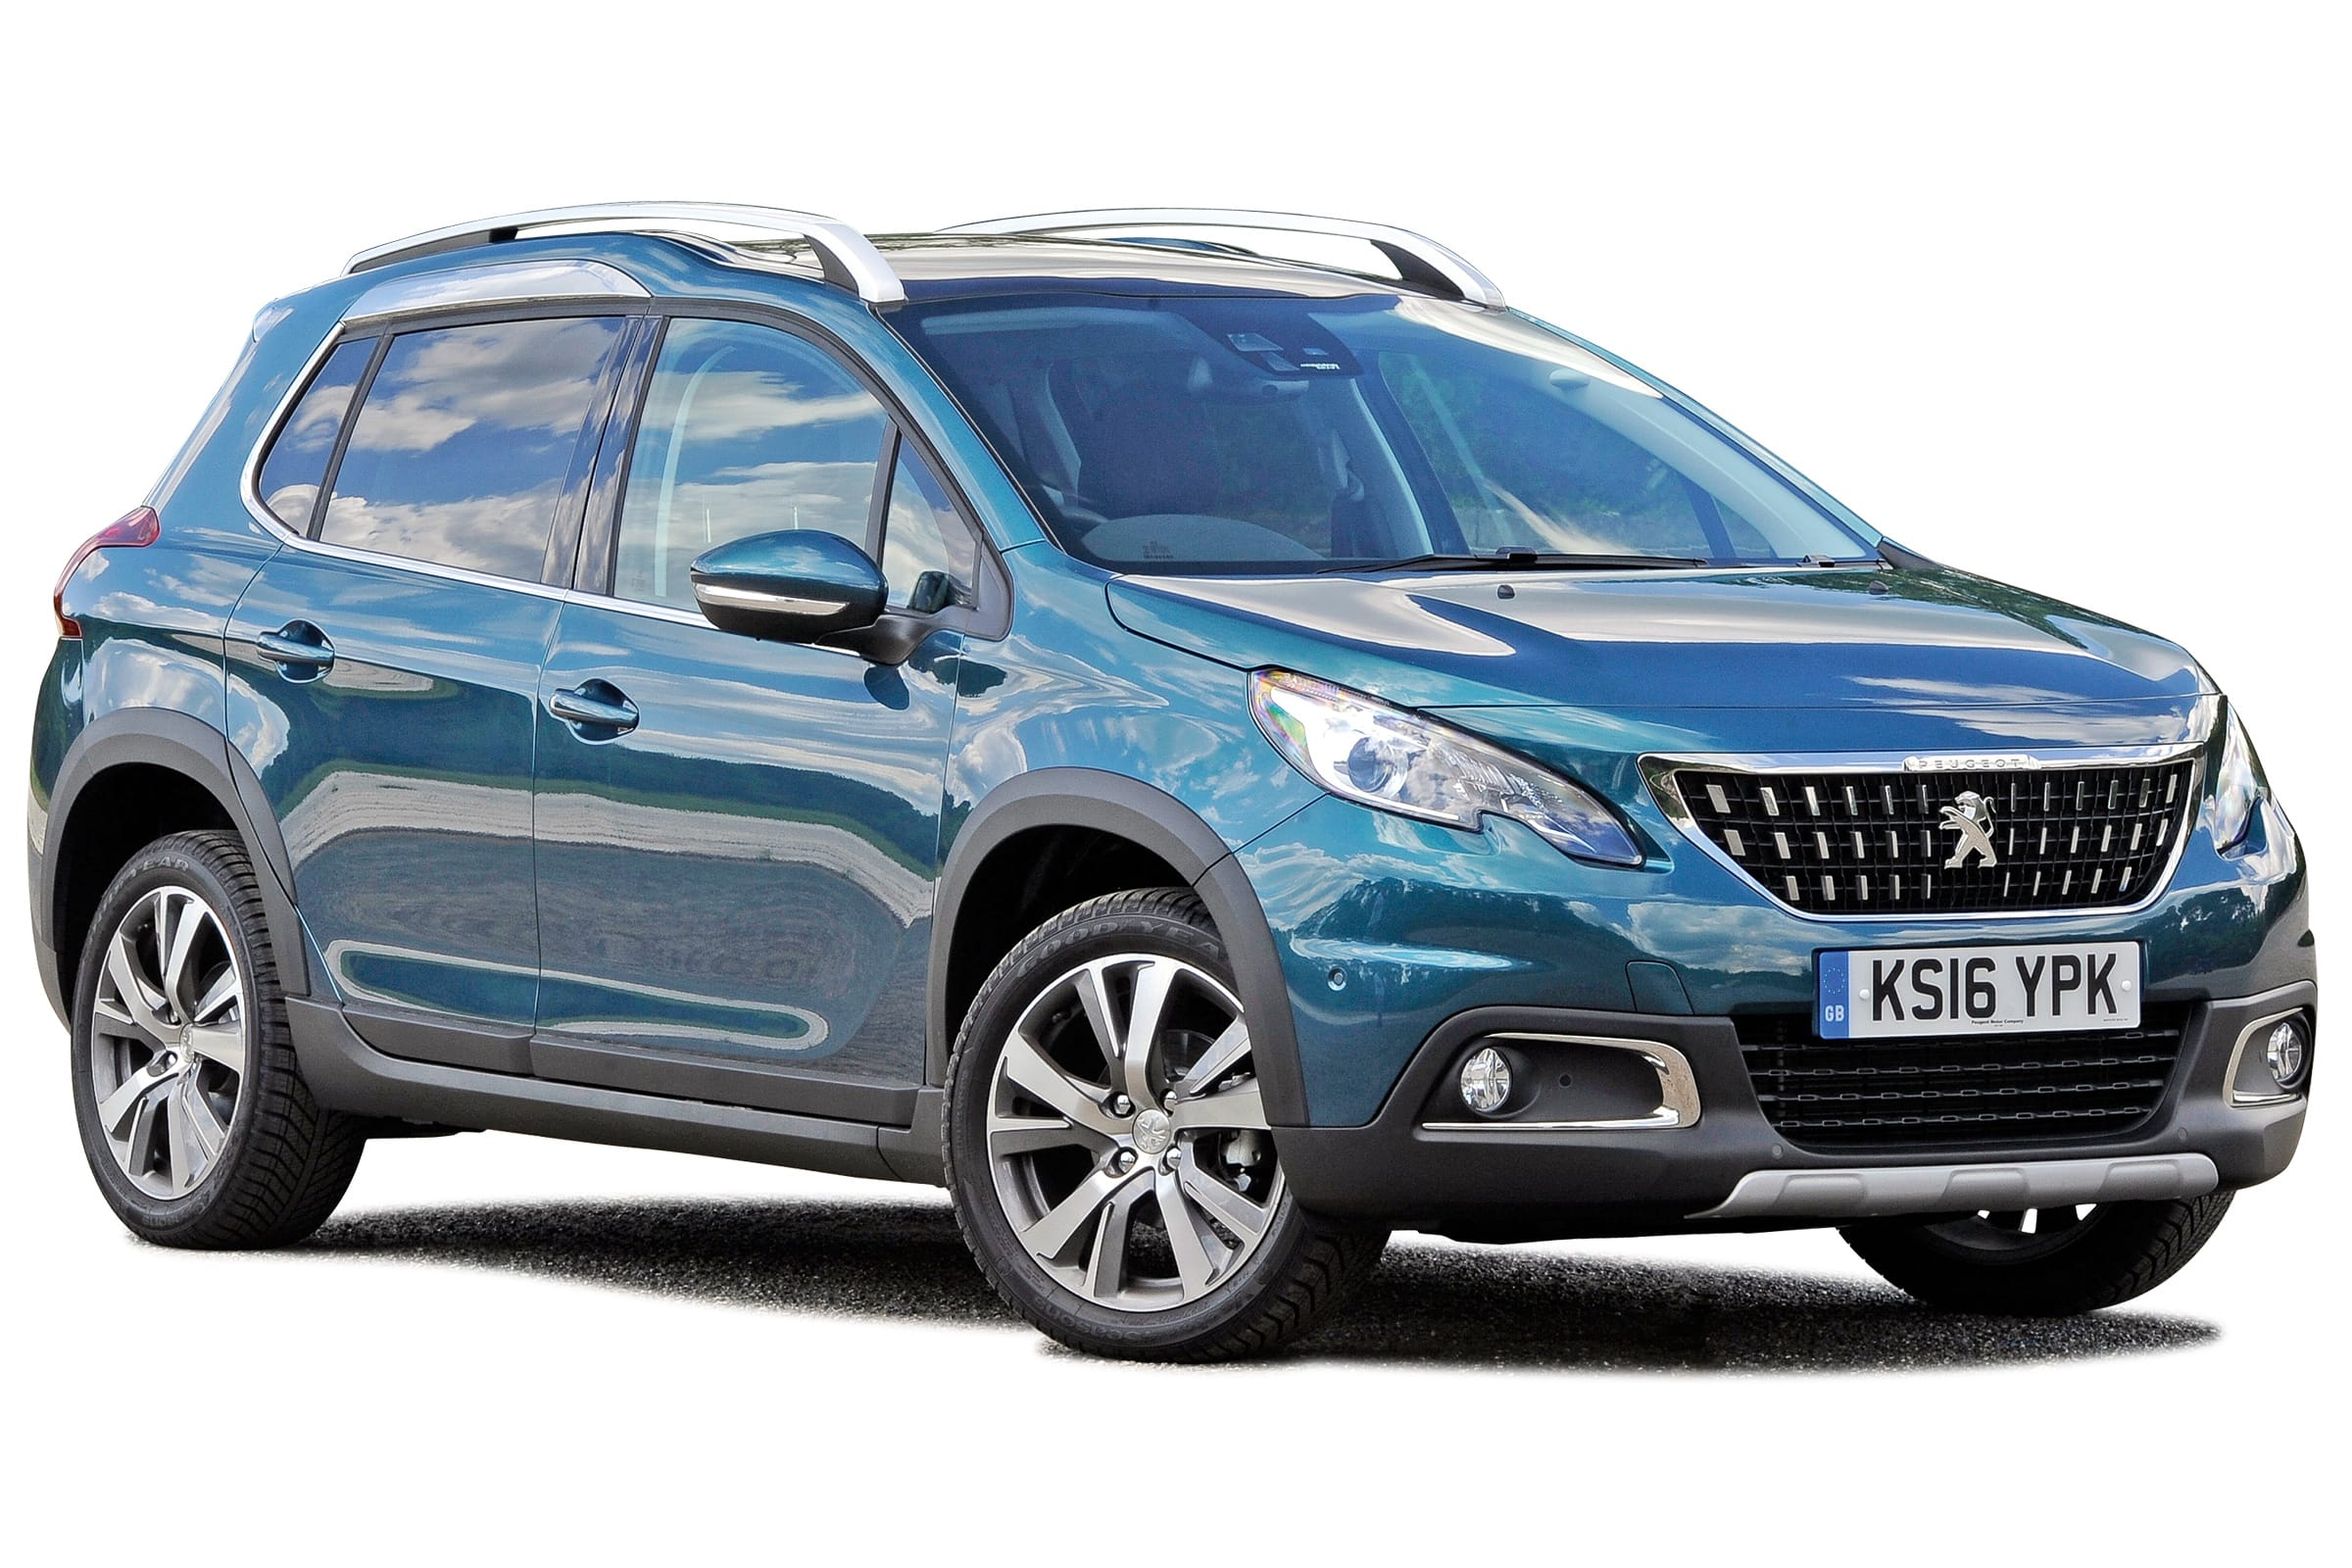 Peugeot divulge plans for India: Report | Find New & Upcoming Cars ...